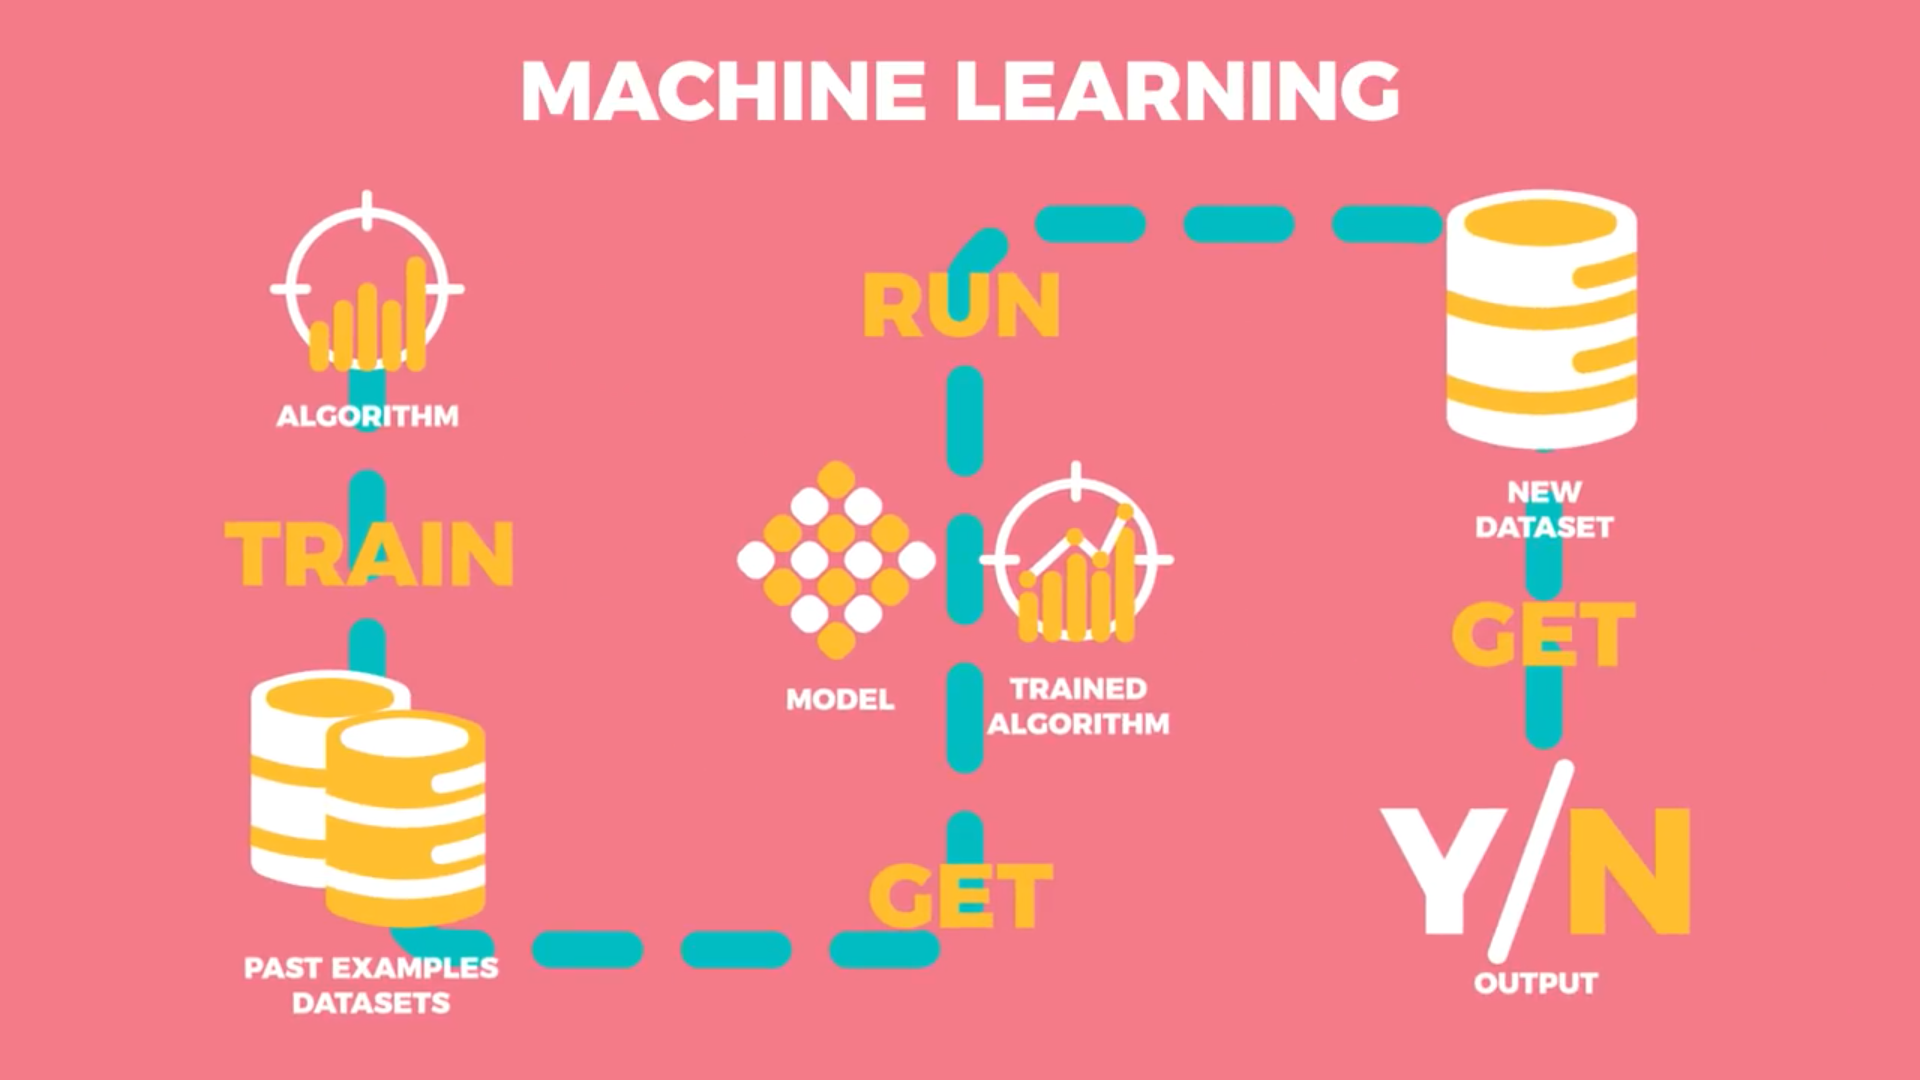 Diagram showing machine learning